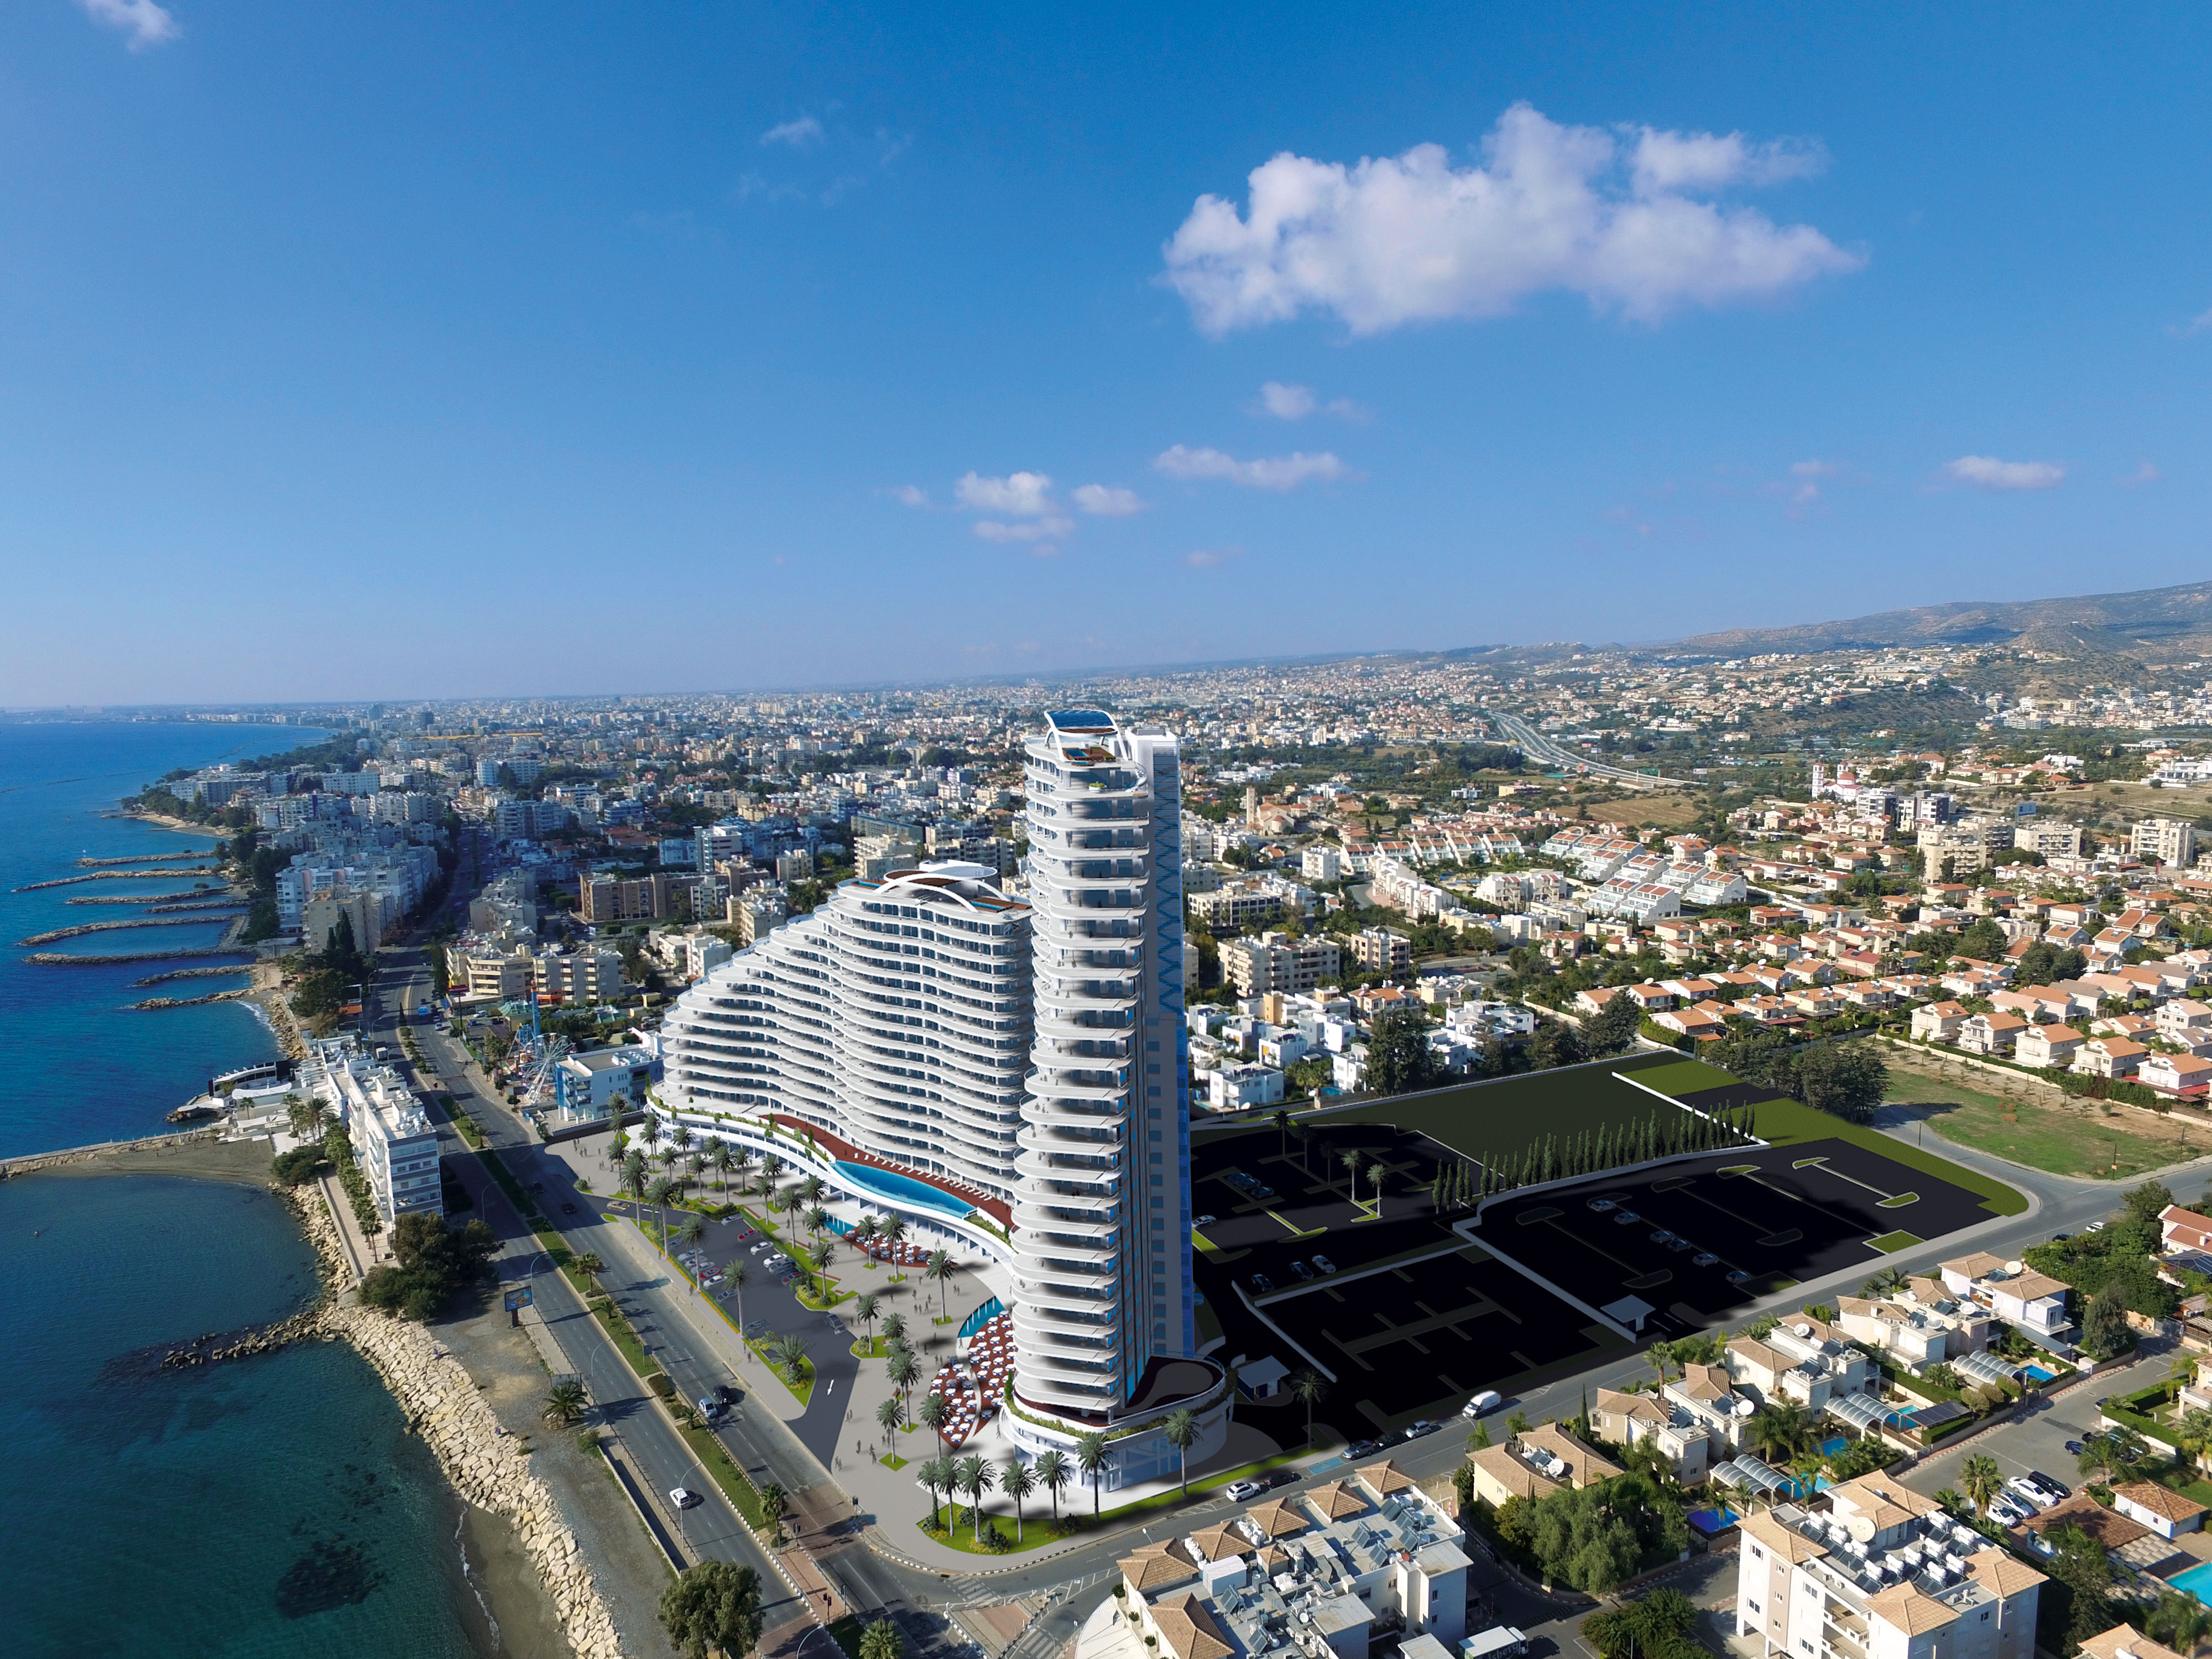 Del-Mar-Cyprus-citizesnhip-by-investment